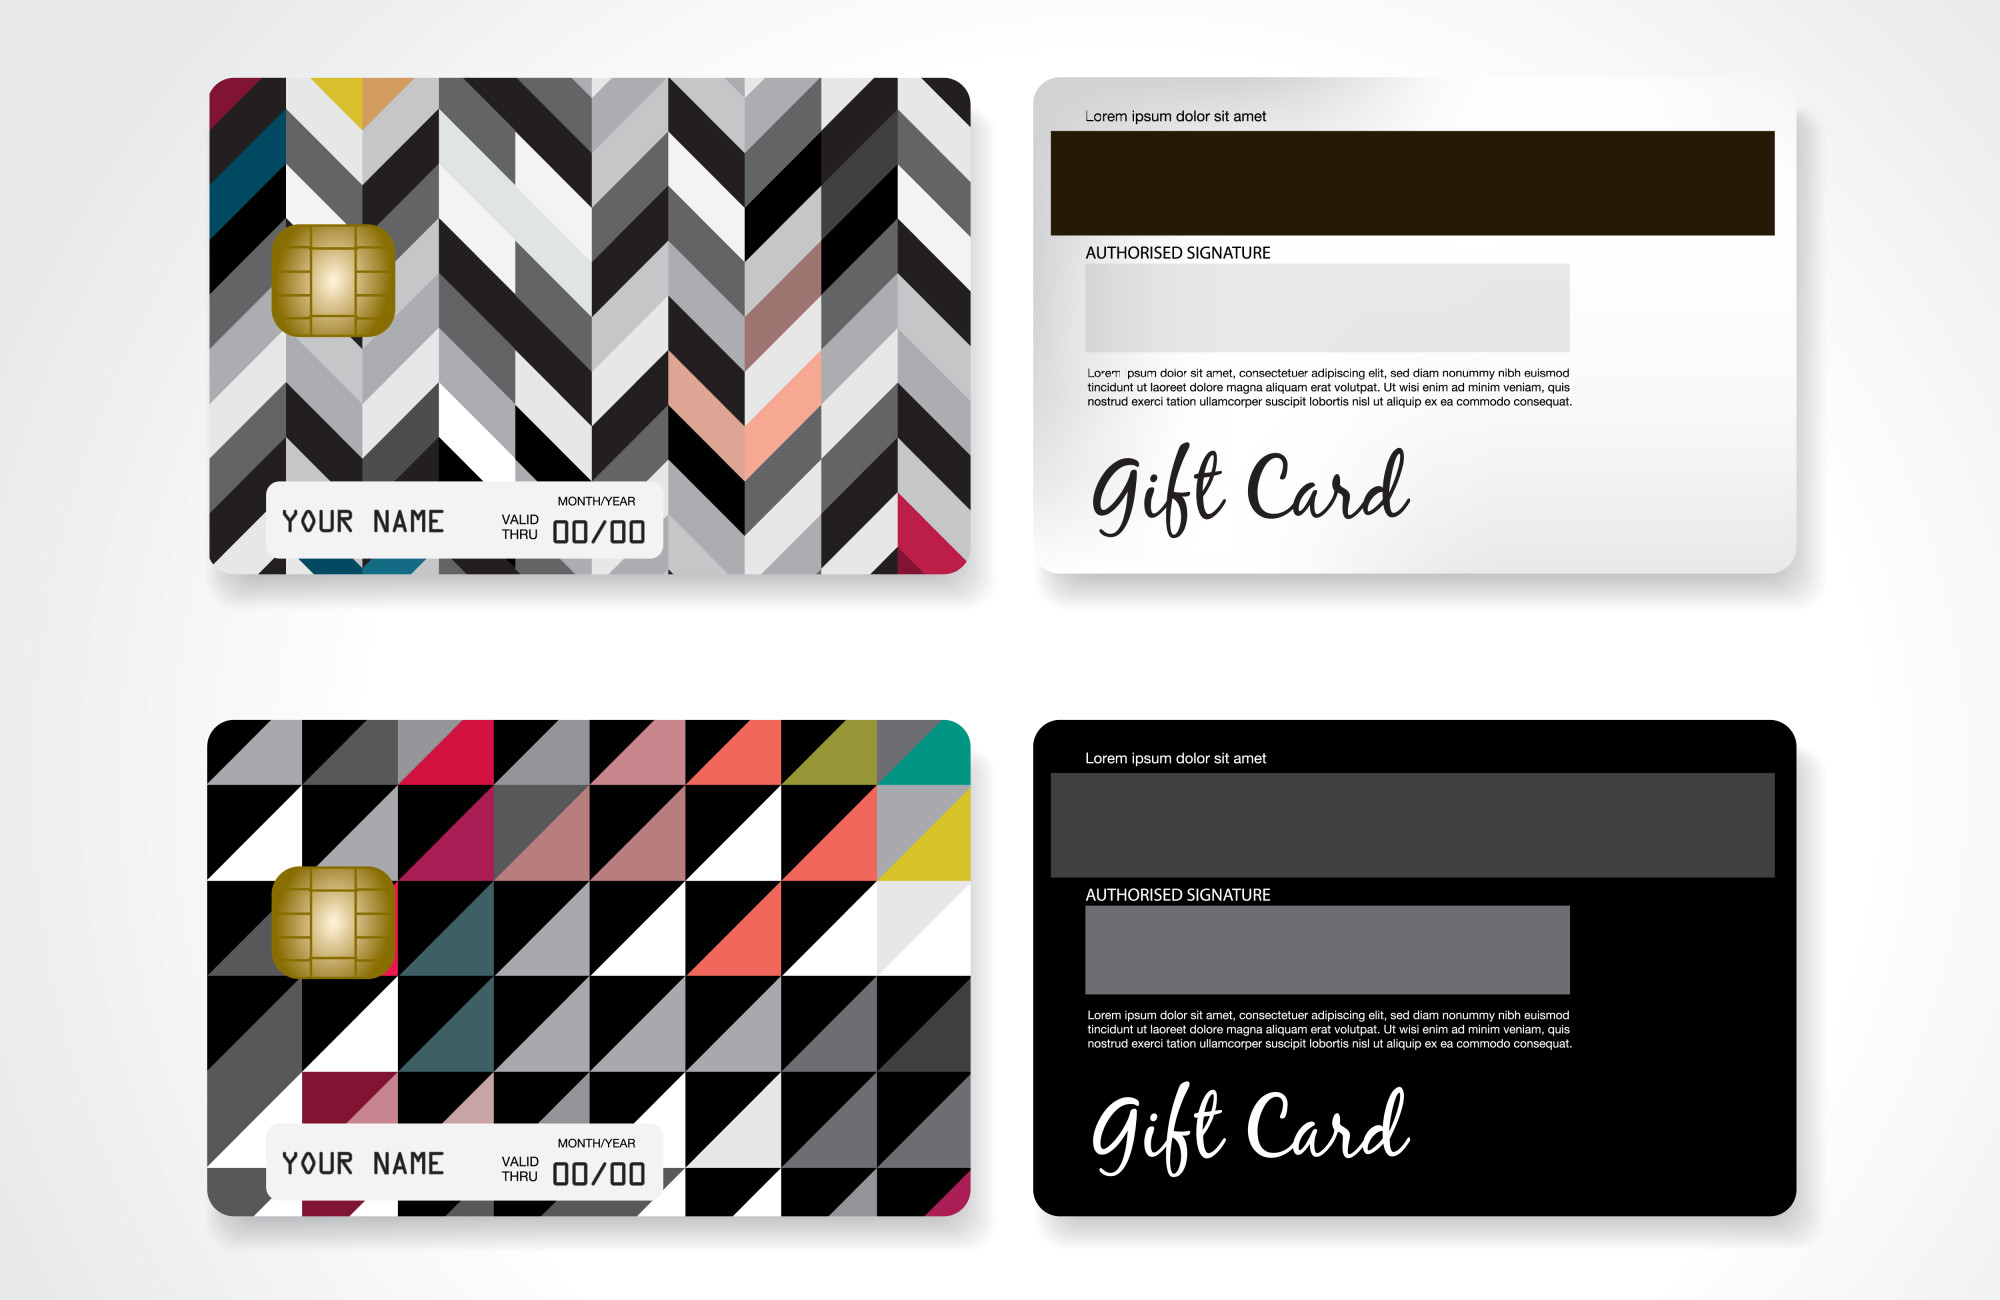 Give & Get: The Best Gift Card Freebie Deals for the Holidays